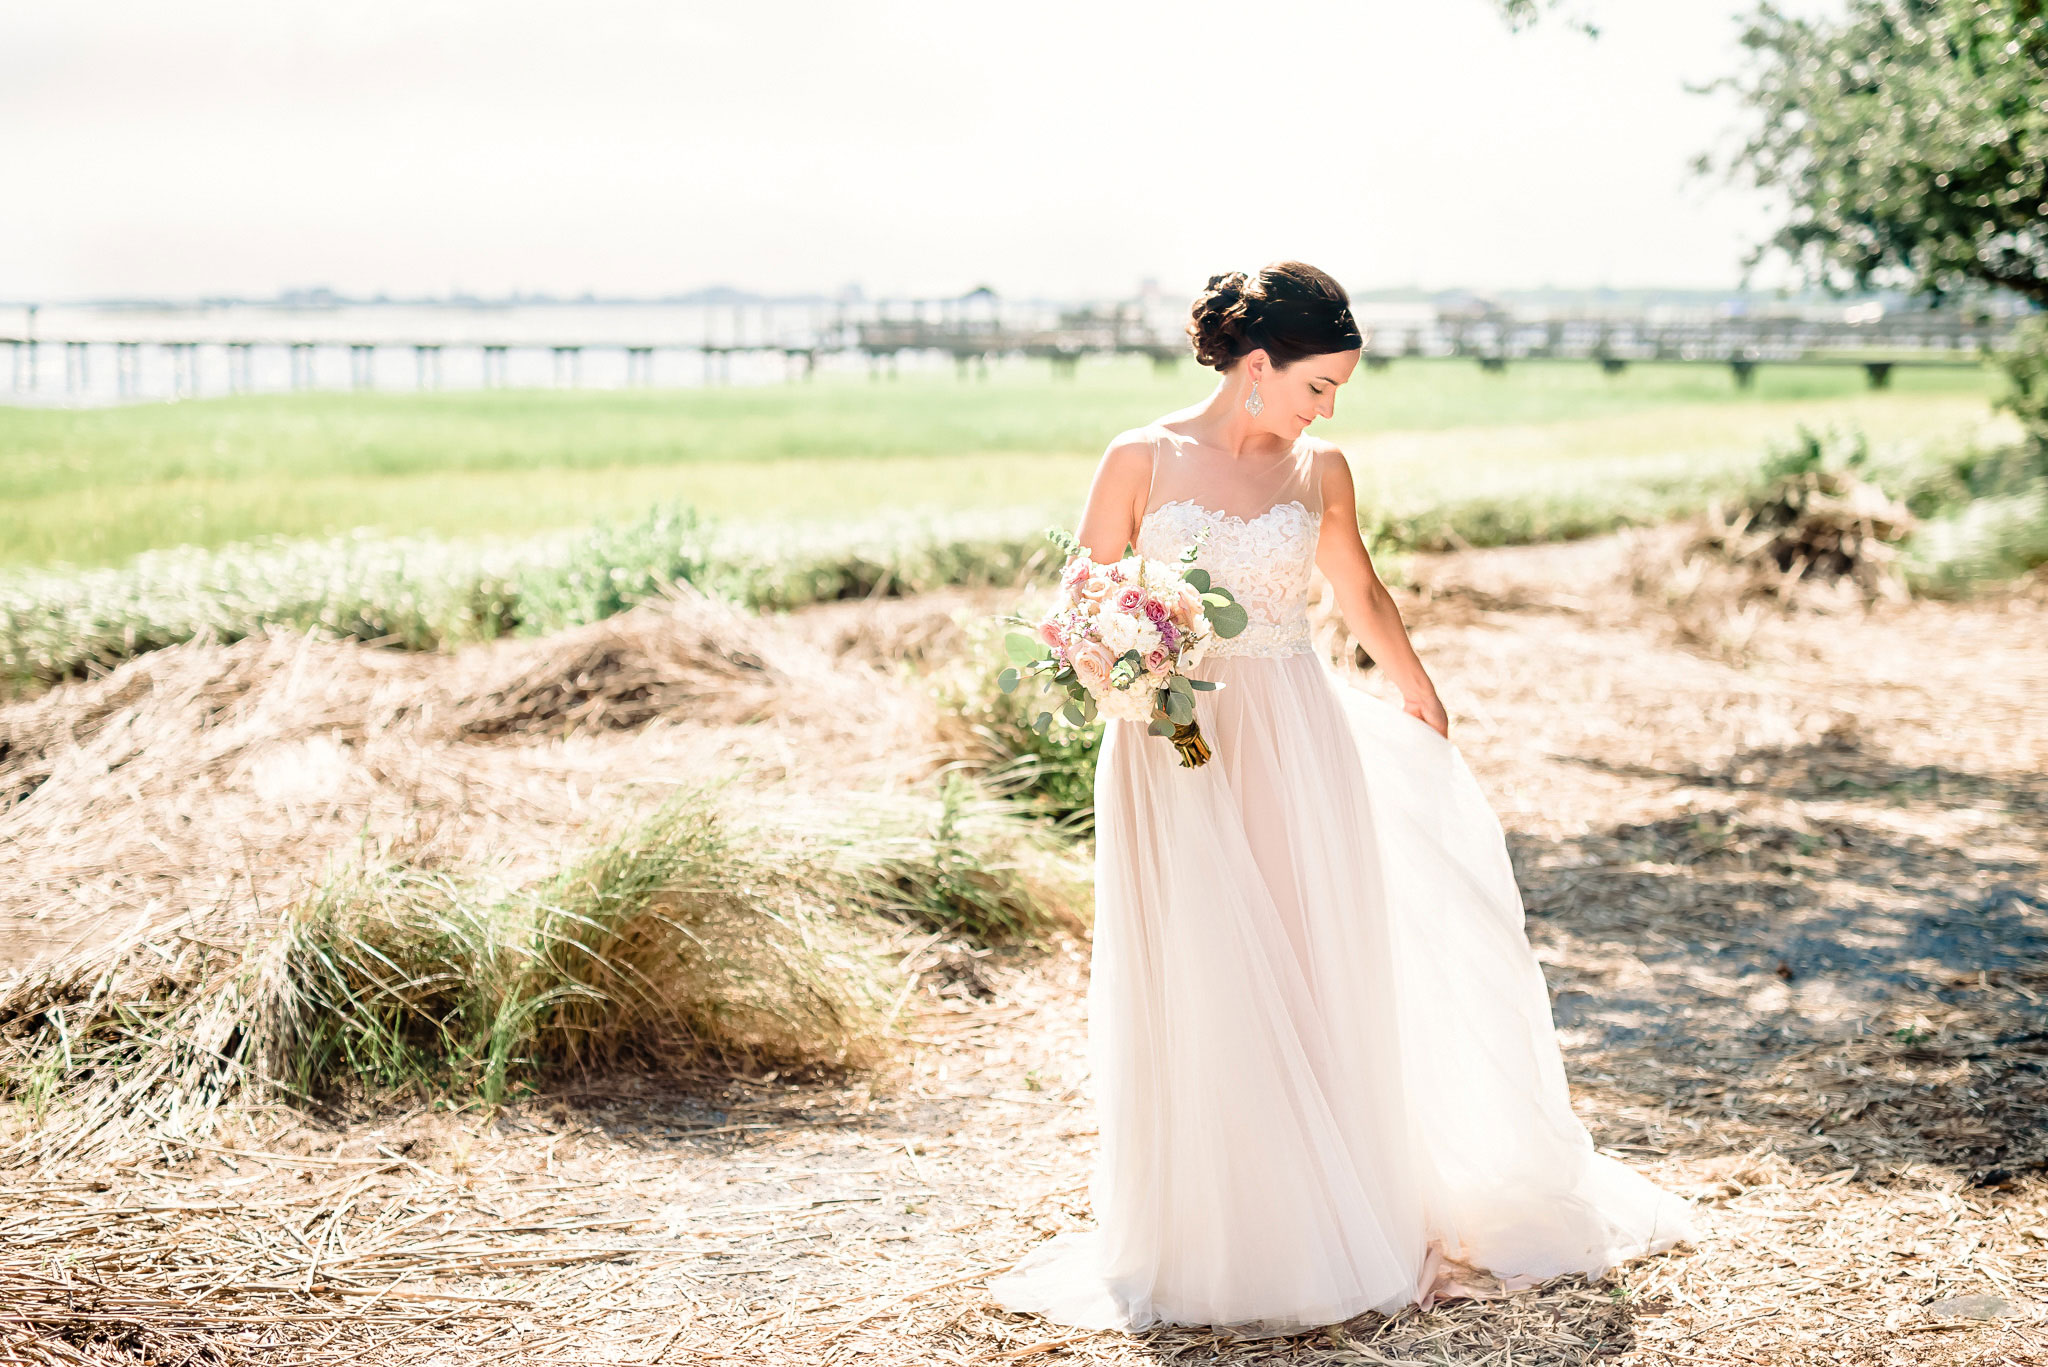 Northern-Virginia-Wedding-Photographer-Natural-Bright-Fine-Art.jpg